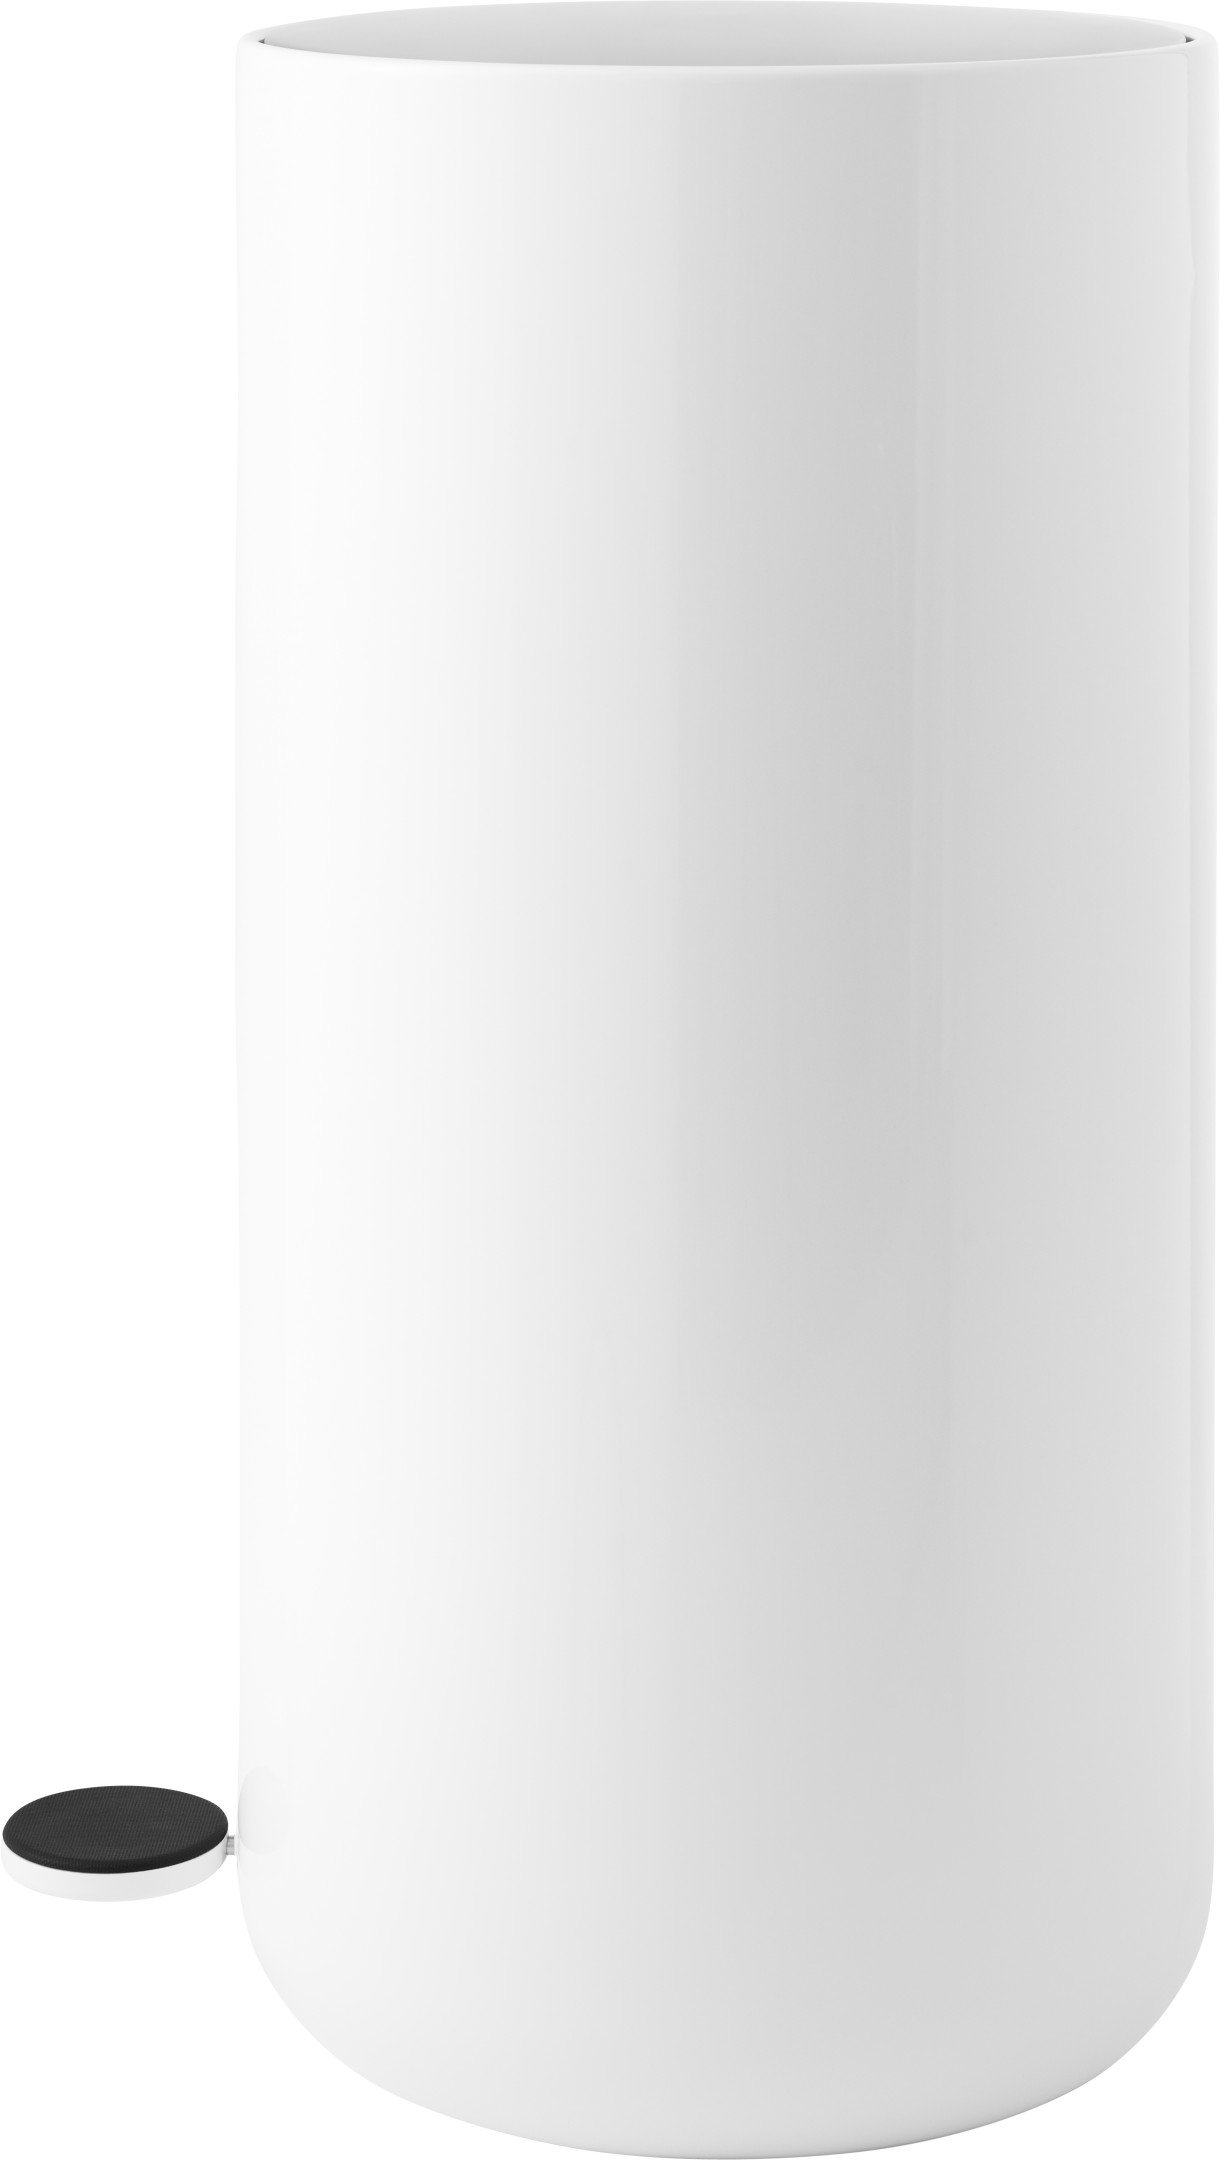 Pedal Bin 20l White by Norm Architects for Menu